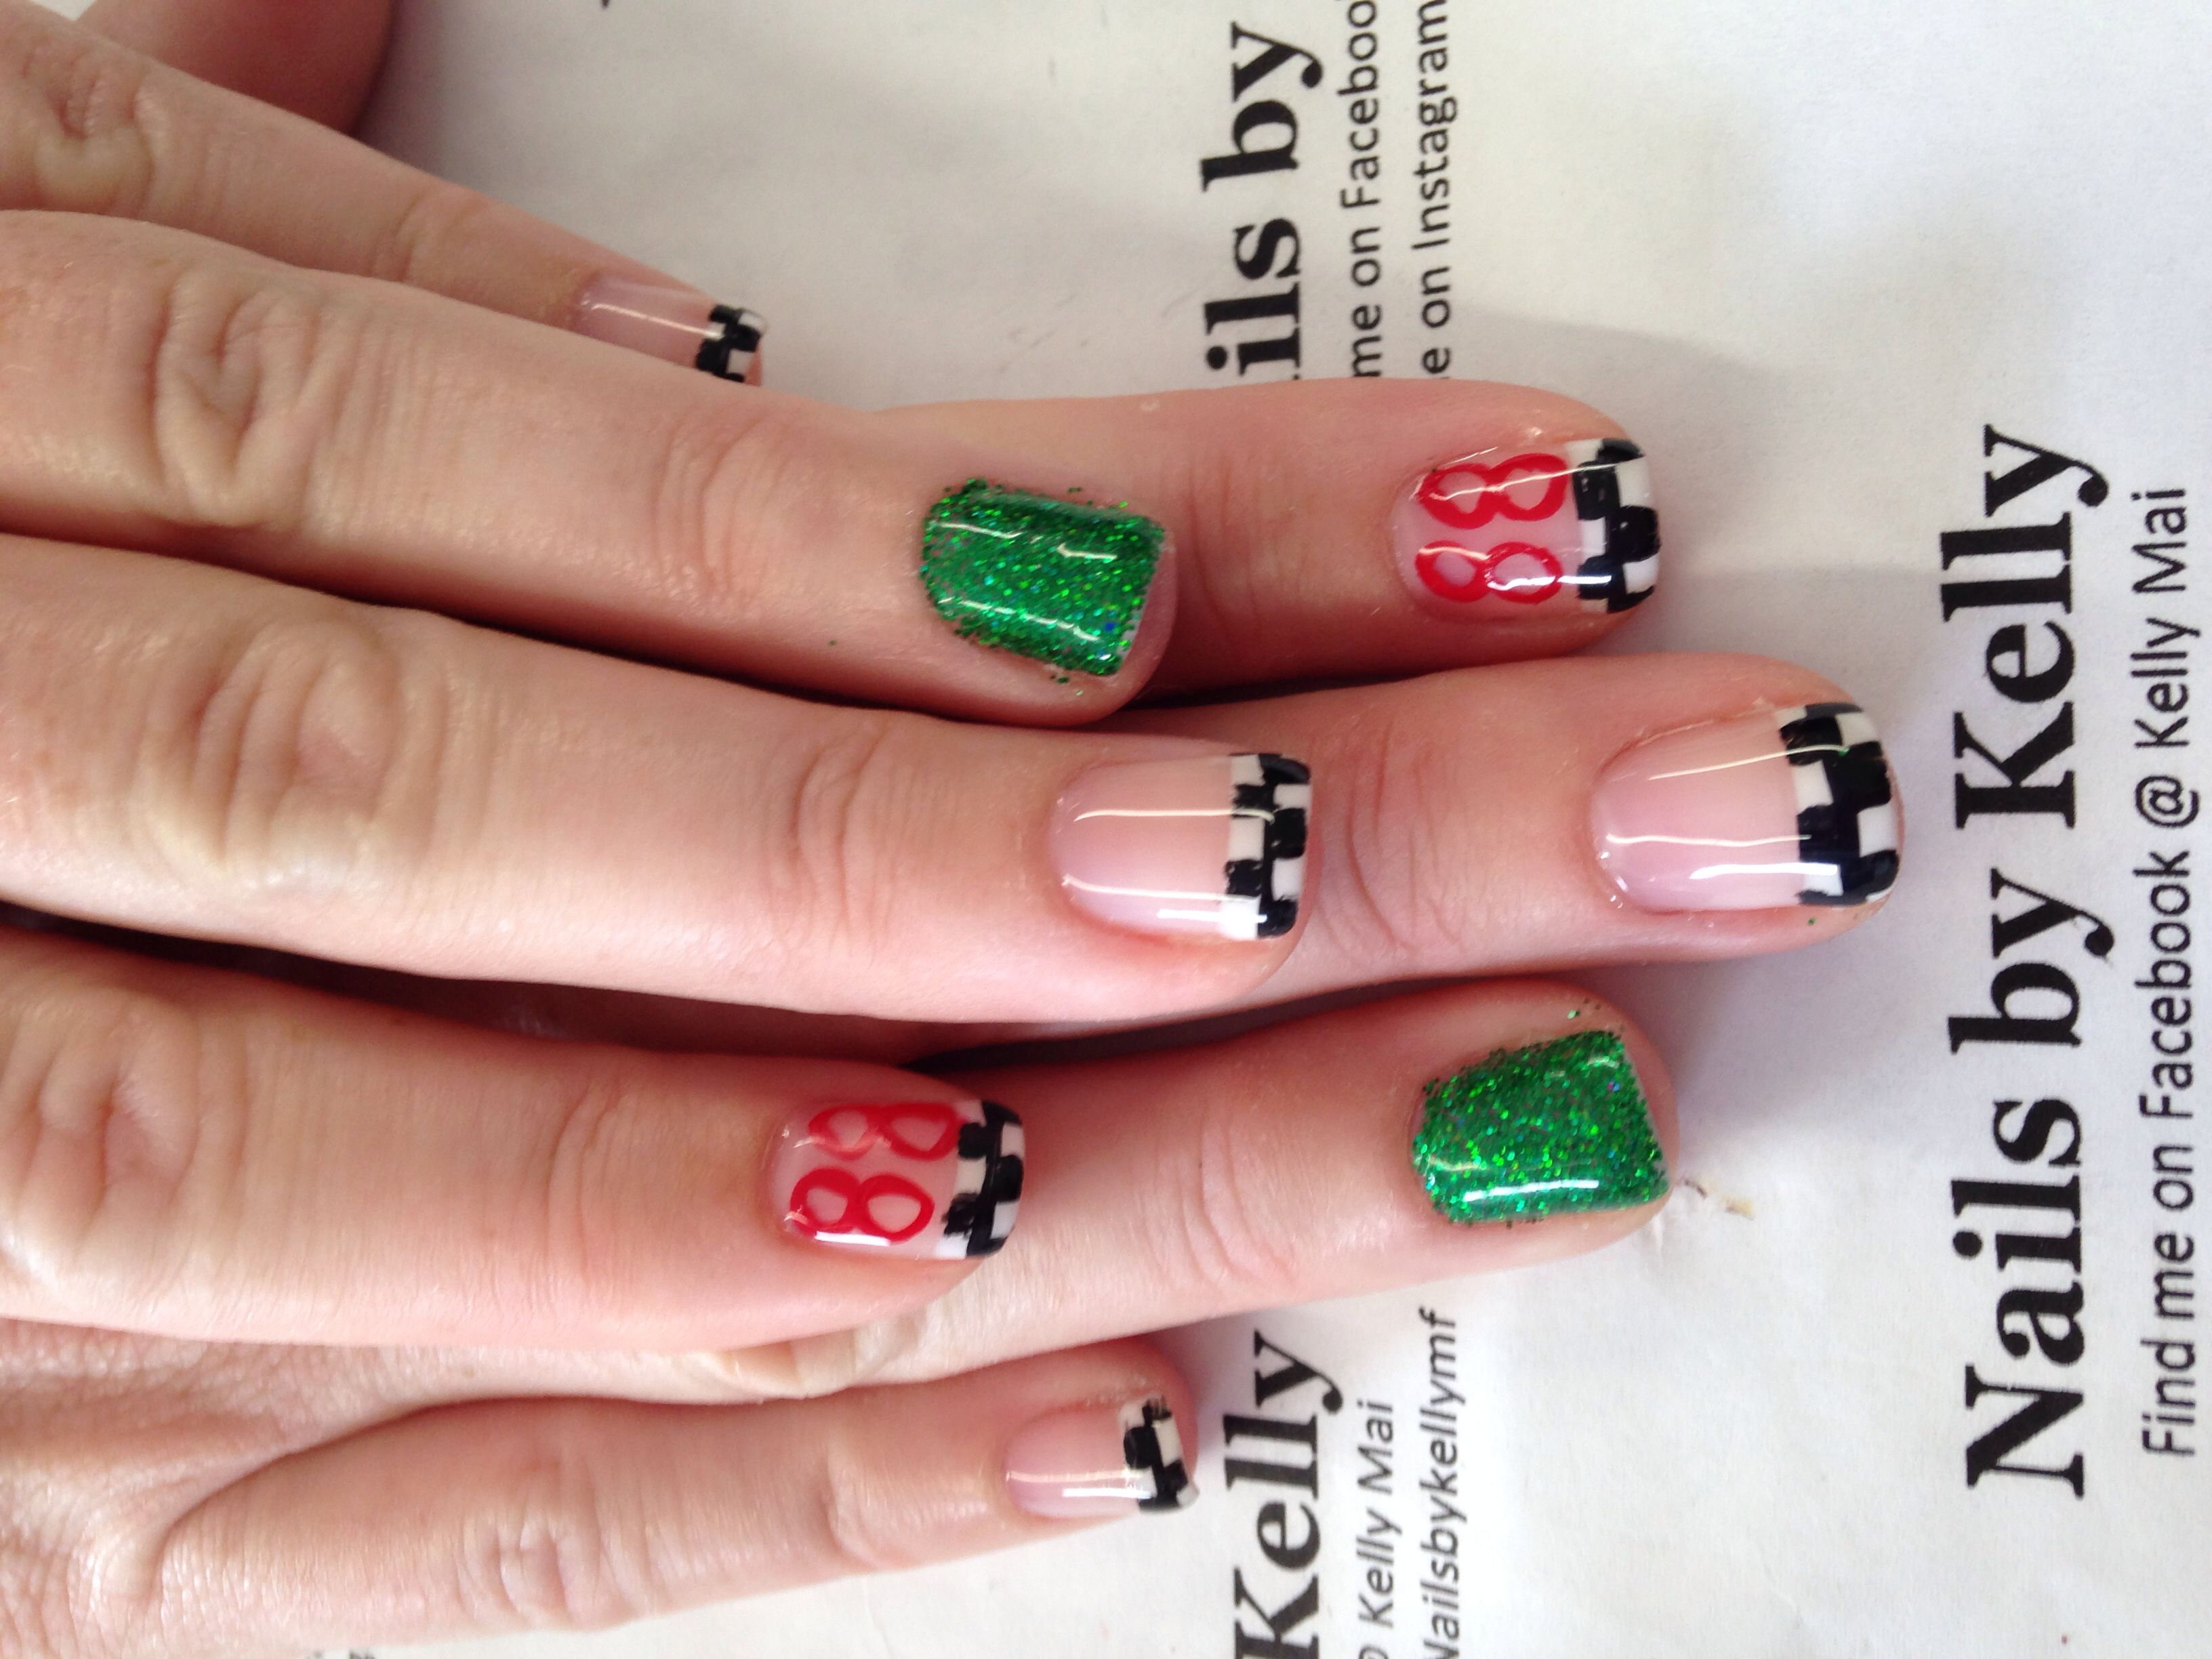 These are my dale jr nails! | nascar nails | Pinterest | Nascar ...